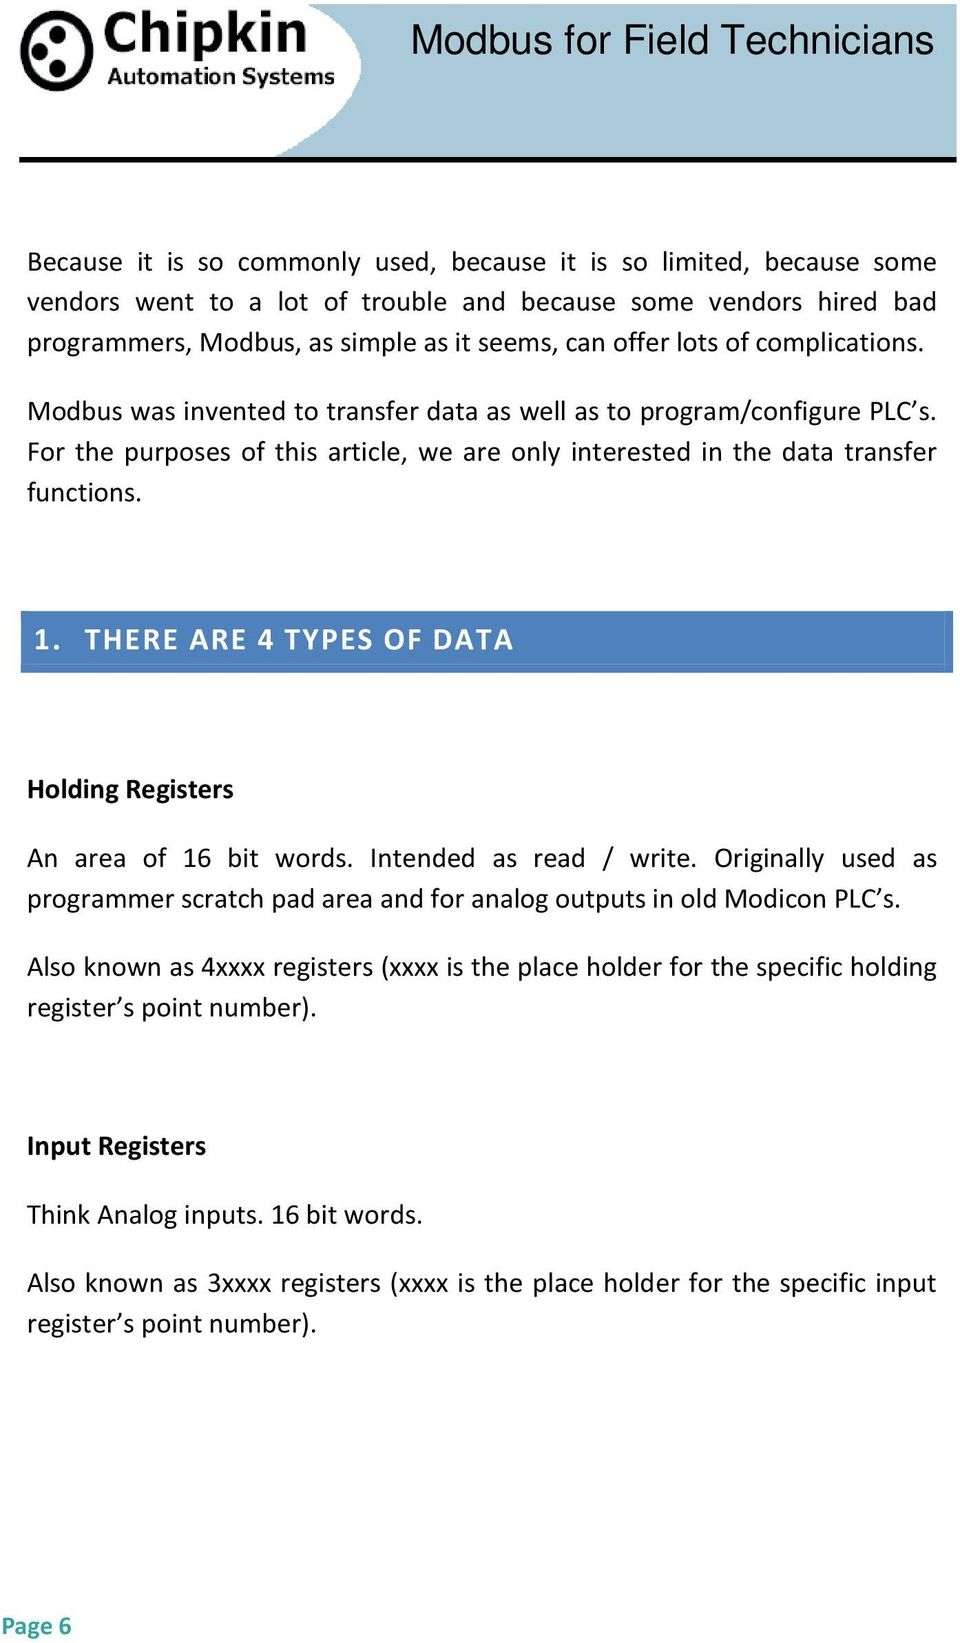 THERE ARE 4 TYPES OF DATA Holding Registers An area of 16 bit words. Intended as read / write. Originally used as programmer scratch pad area and for analog outputs in old Modicon PLC s.